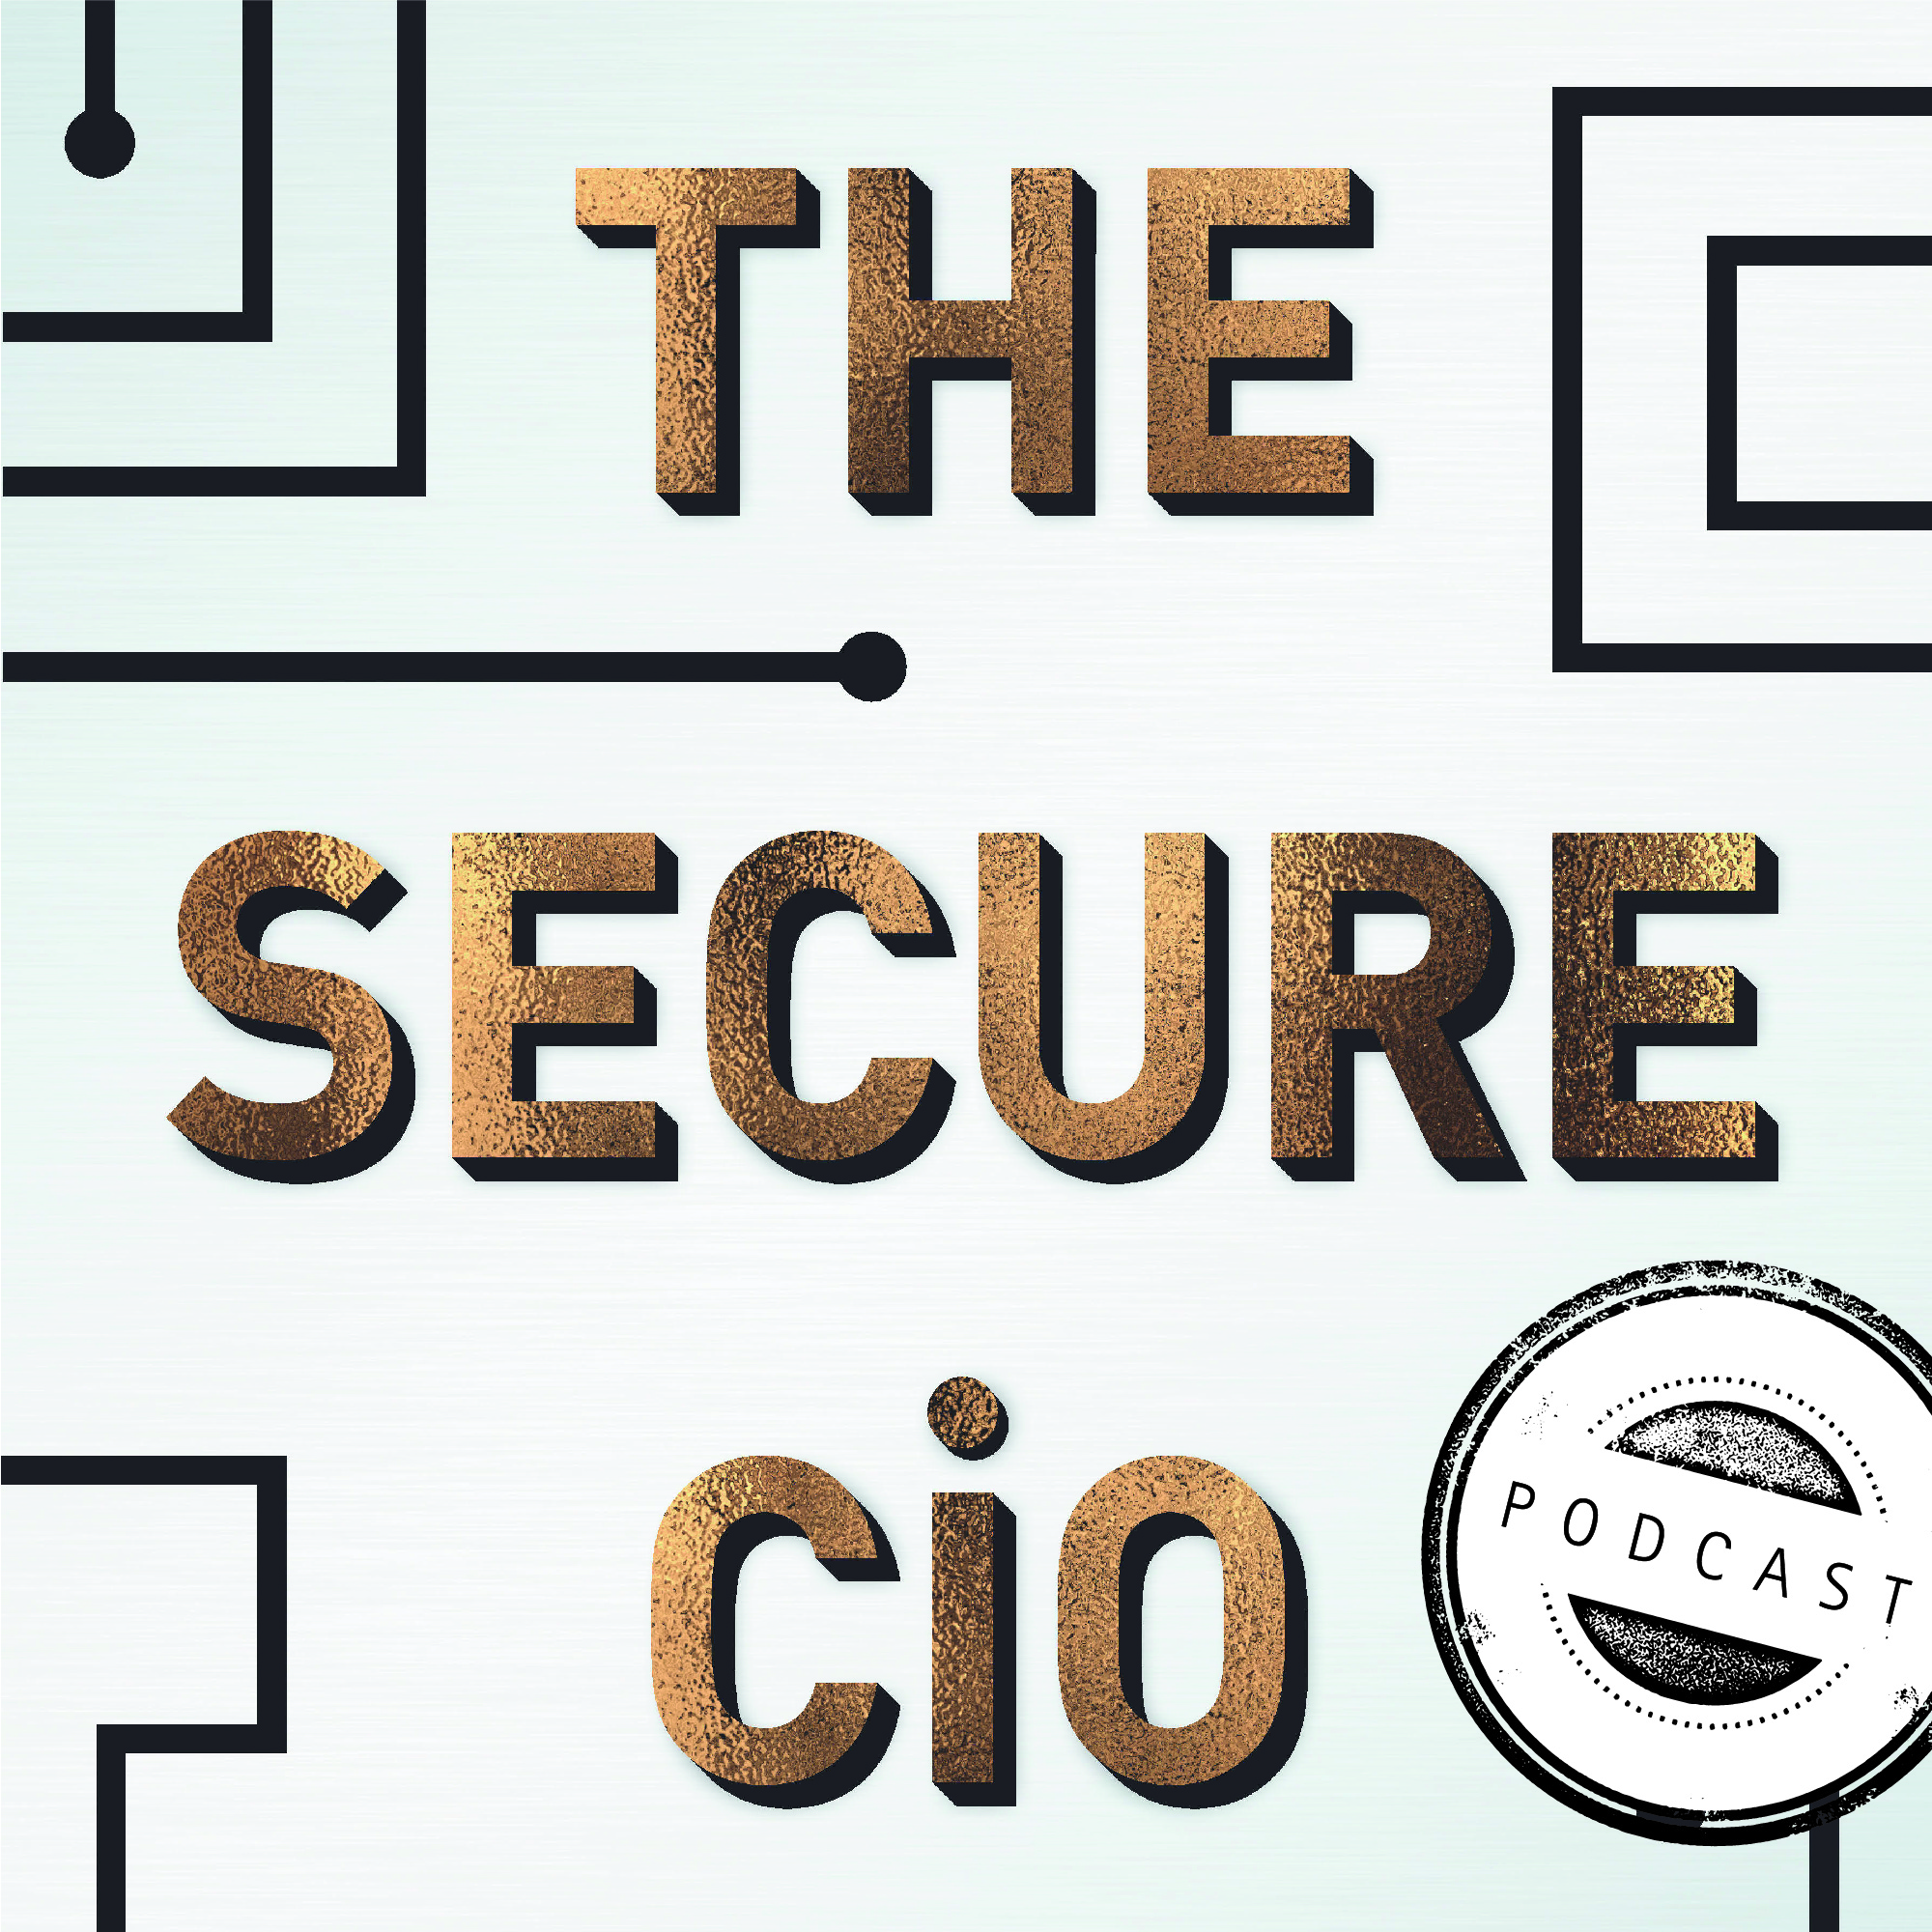 Join me, Claire Pales, as I chat with some of the cybersecurity industry's greatest minds. Taking a page from my book 'The Secure CIO', the podcast features conversations about leadership, diversity, sourcing of great cyber security talent and opinions on the skills crisis.